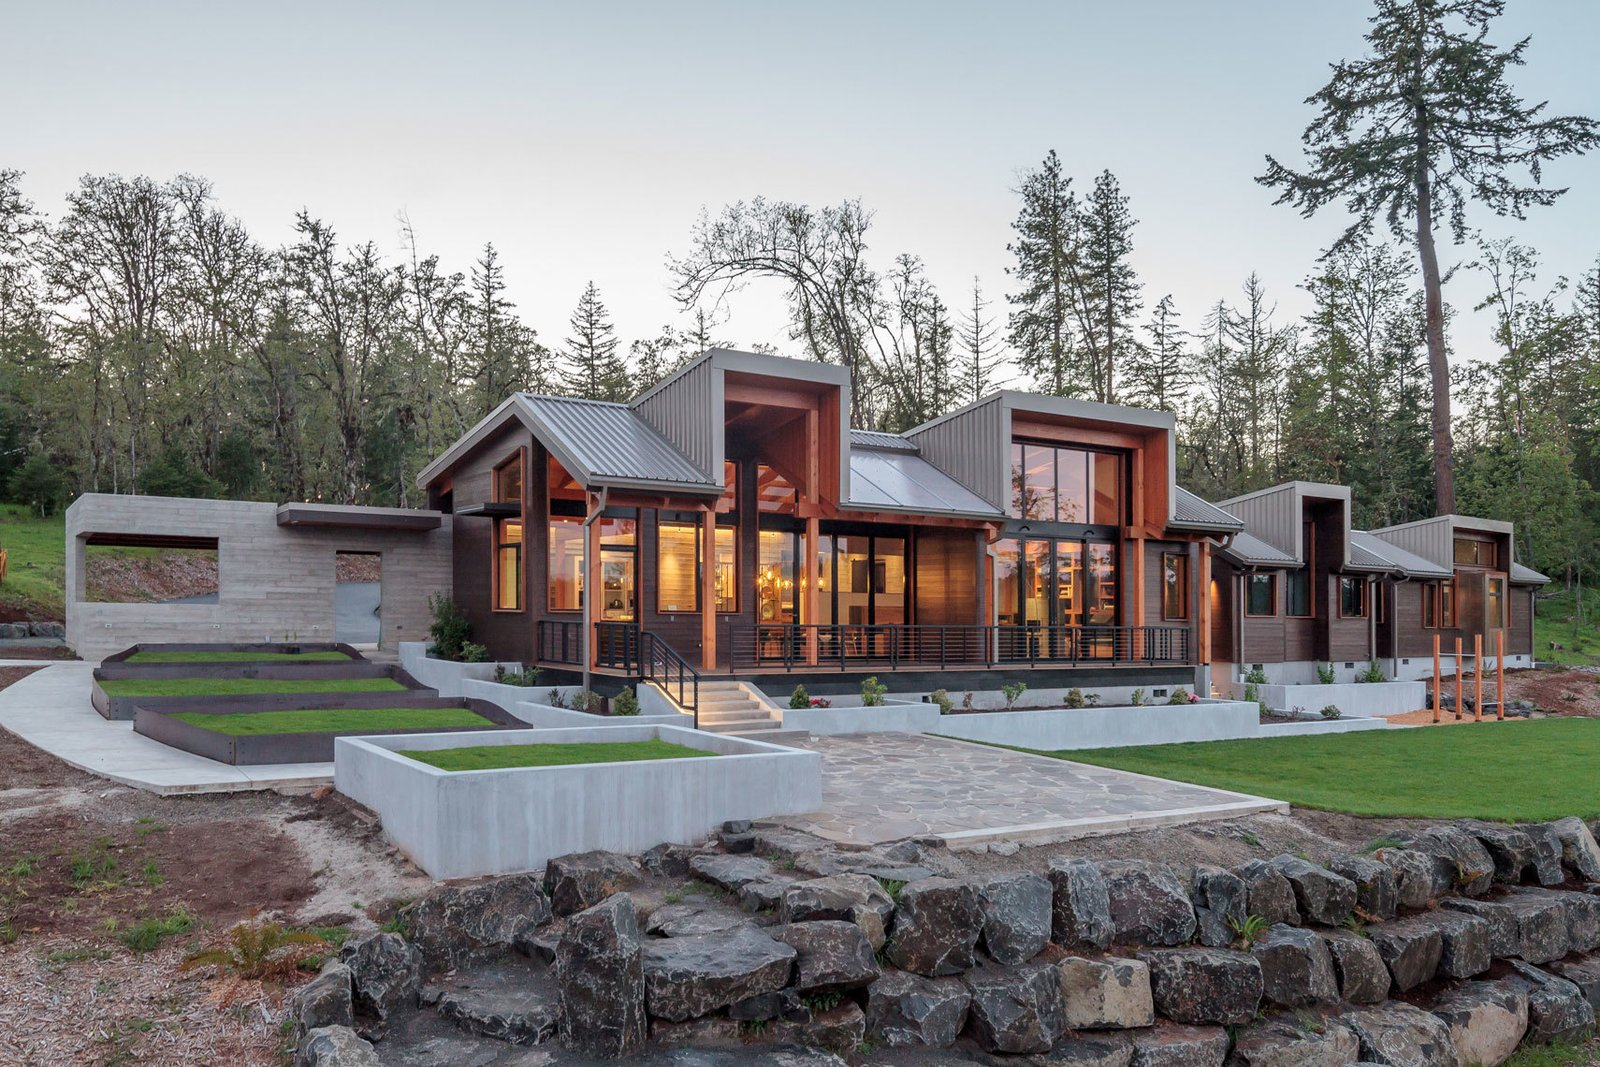 home design eugene oregon timberidge modern home in eugene oregon by 2form architecture on dwell 4296